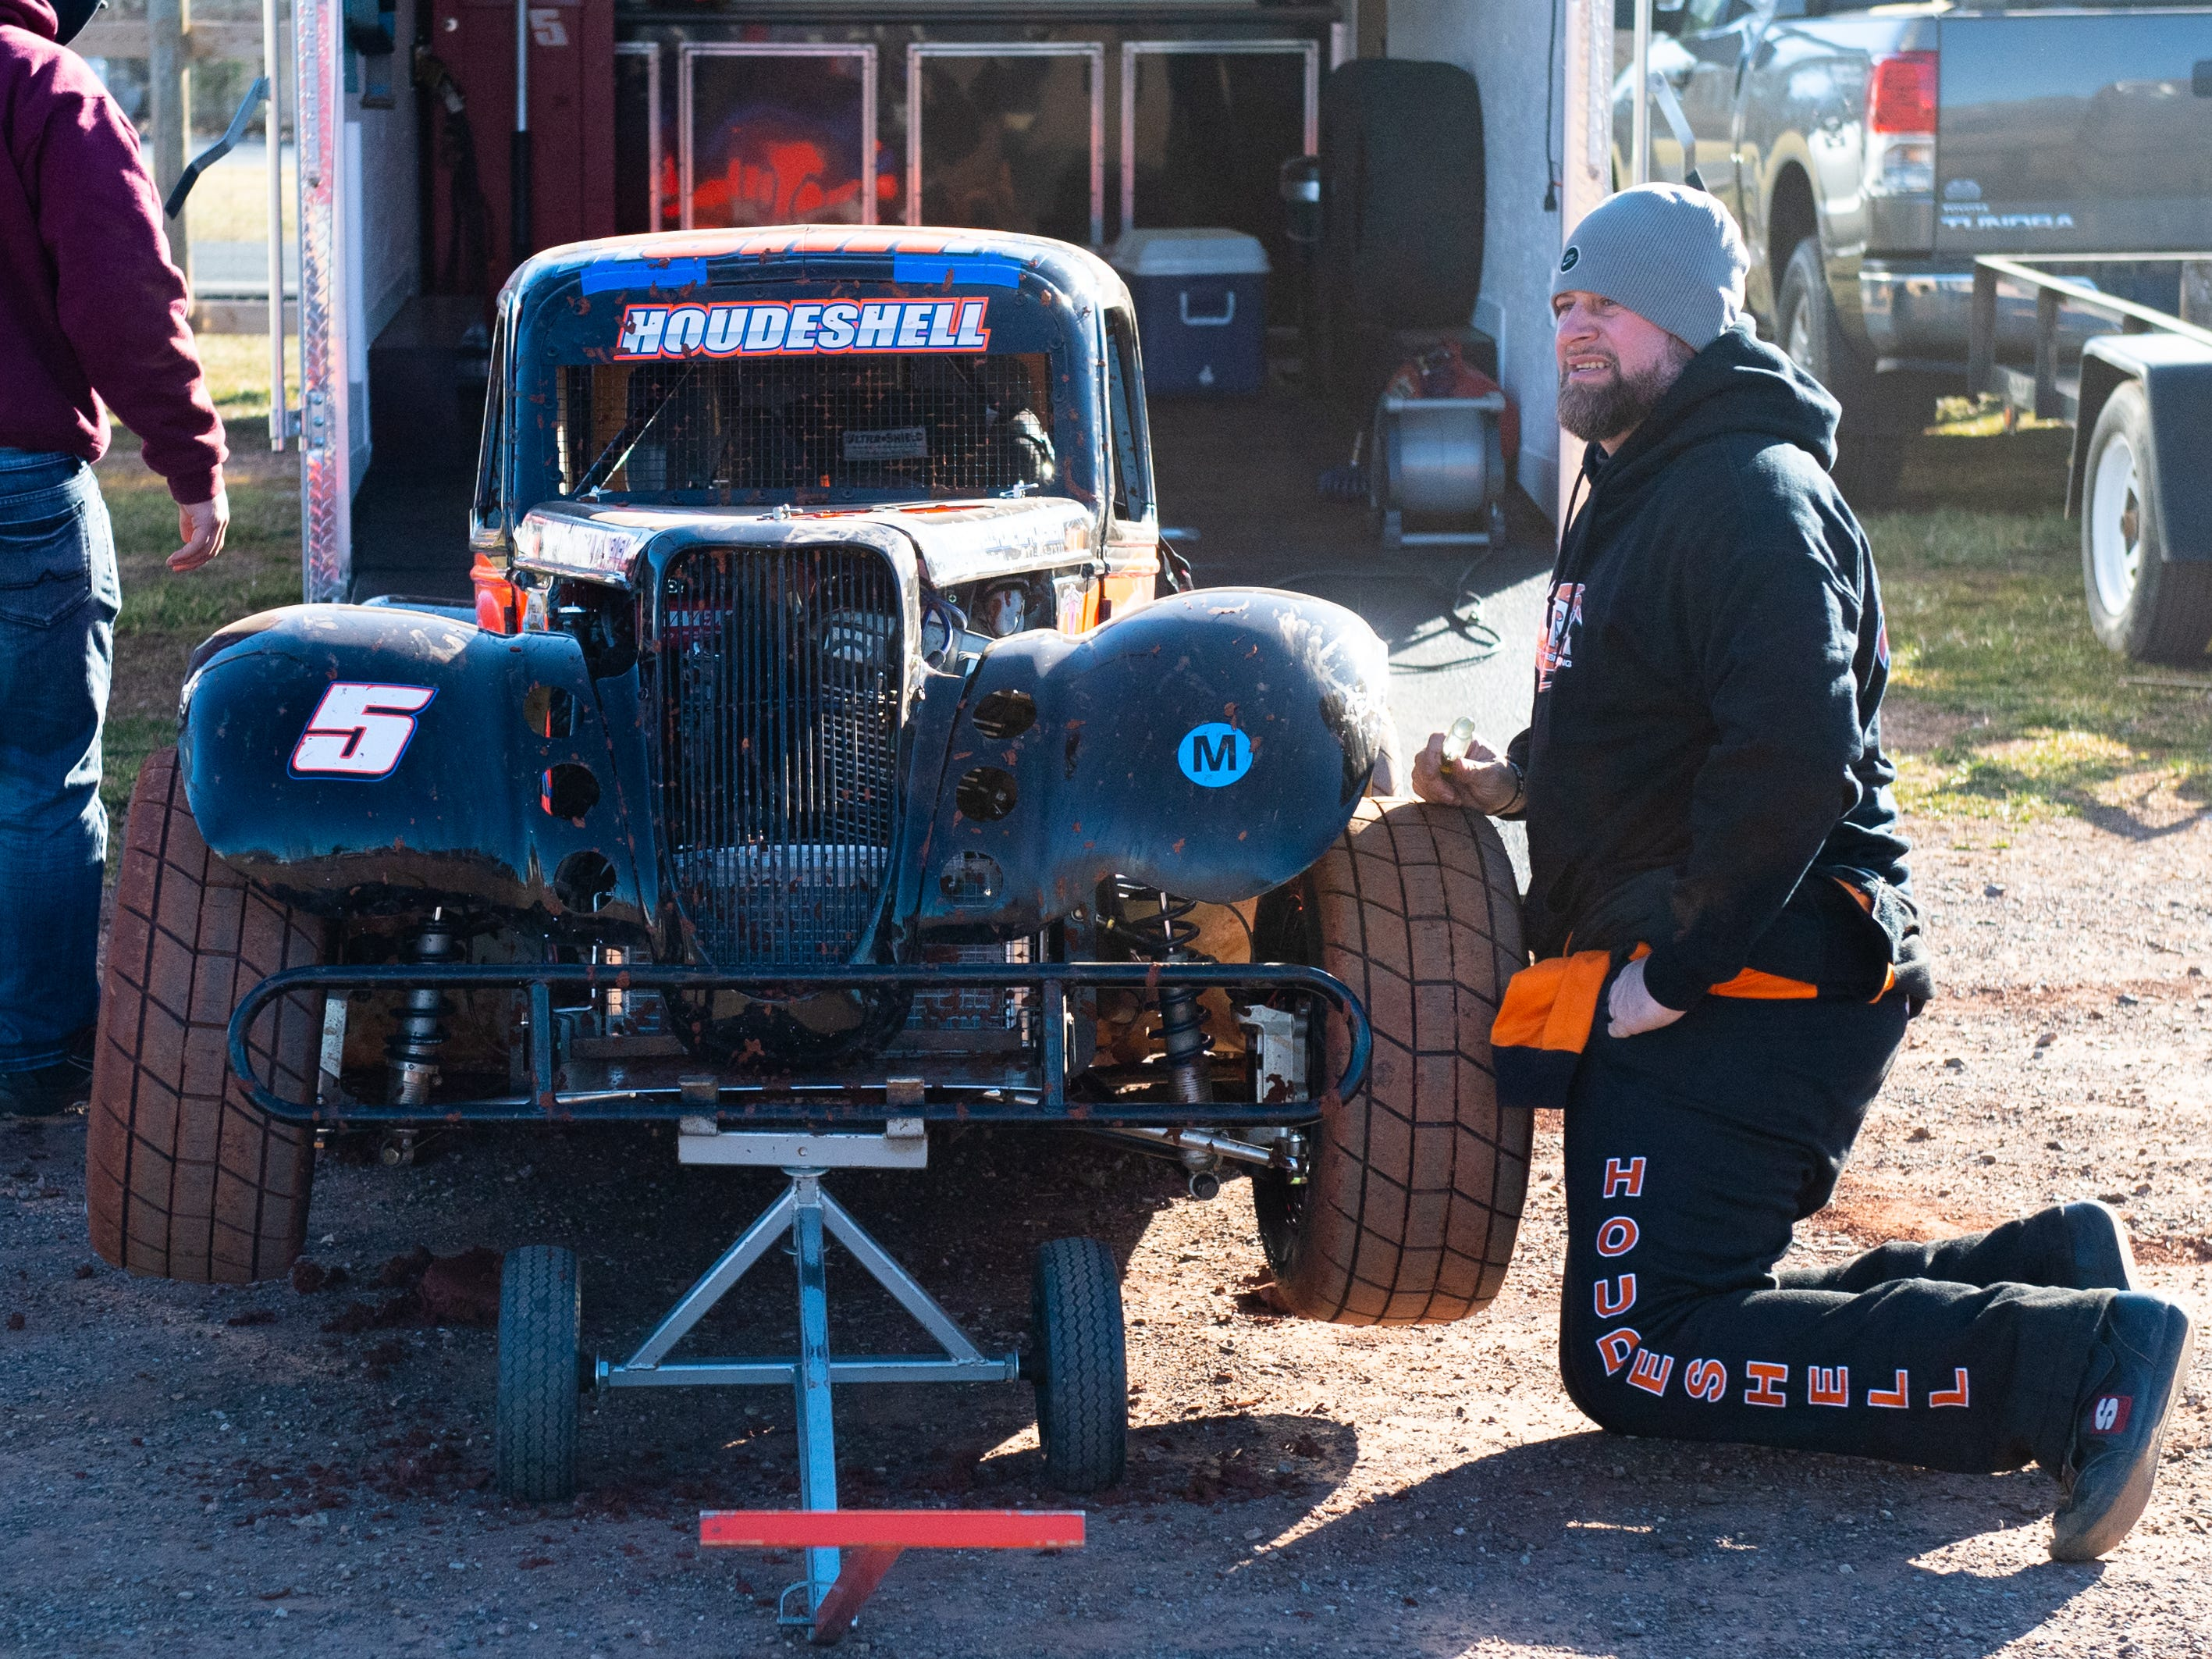 Scott Houdeshell works on his car during the 2019 season opener at BAPS Motor Speedway, March 23, 2019.